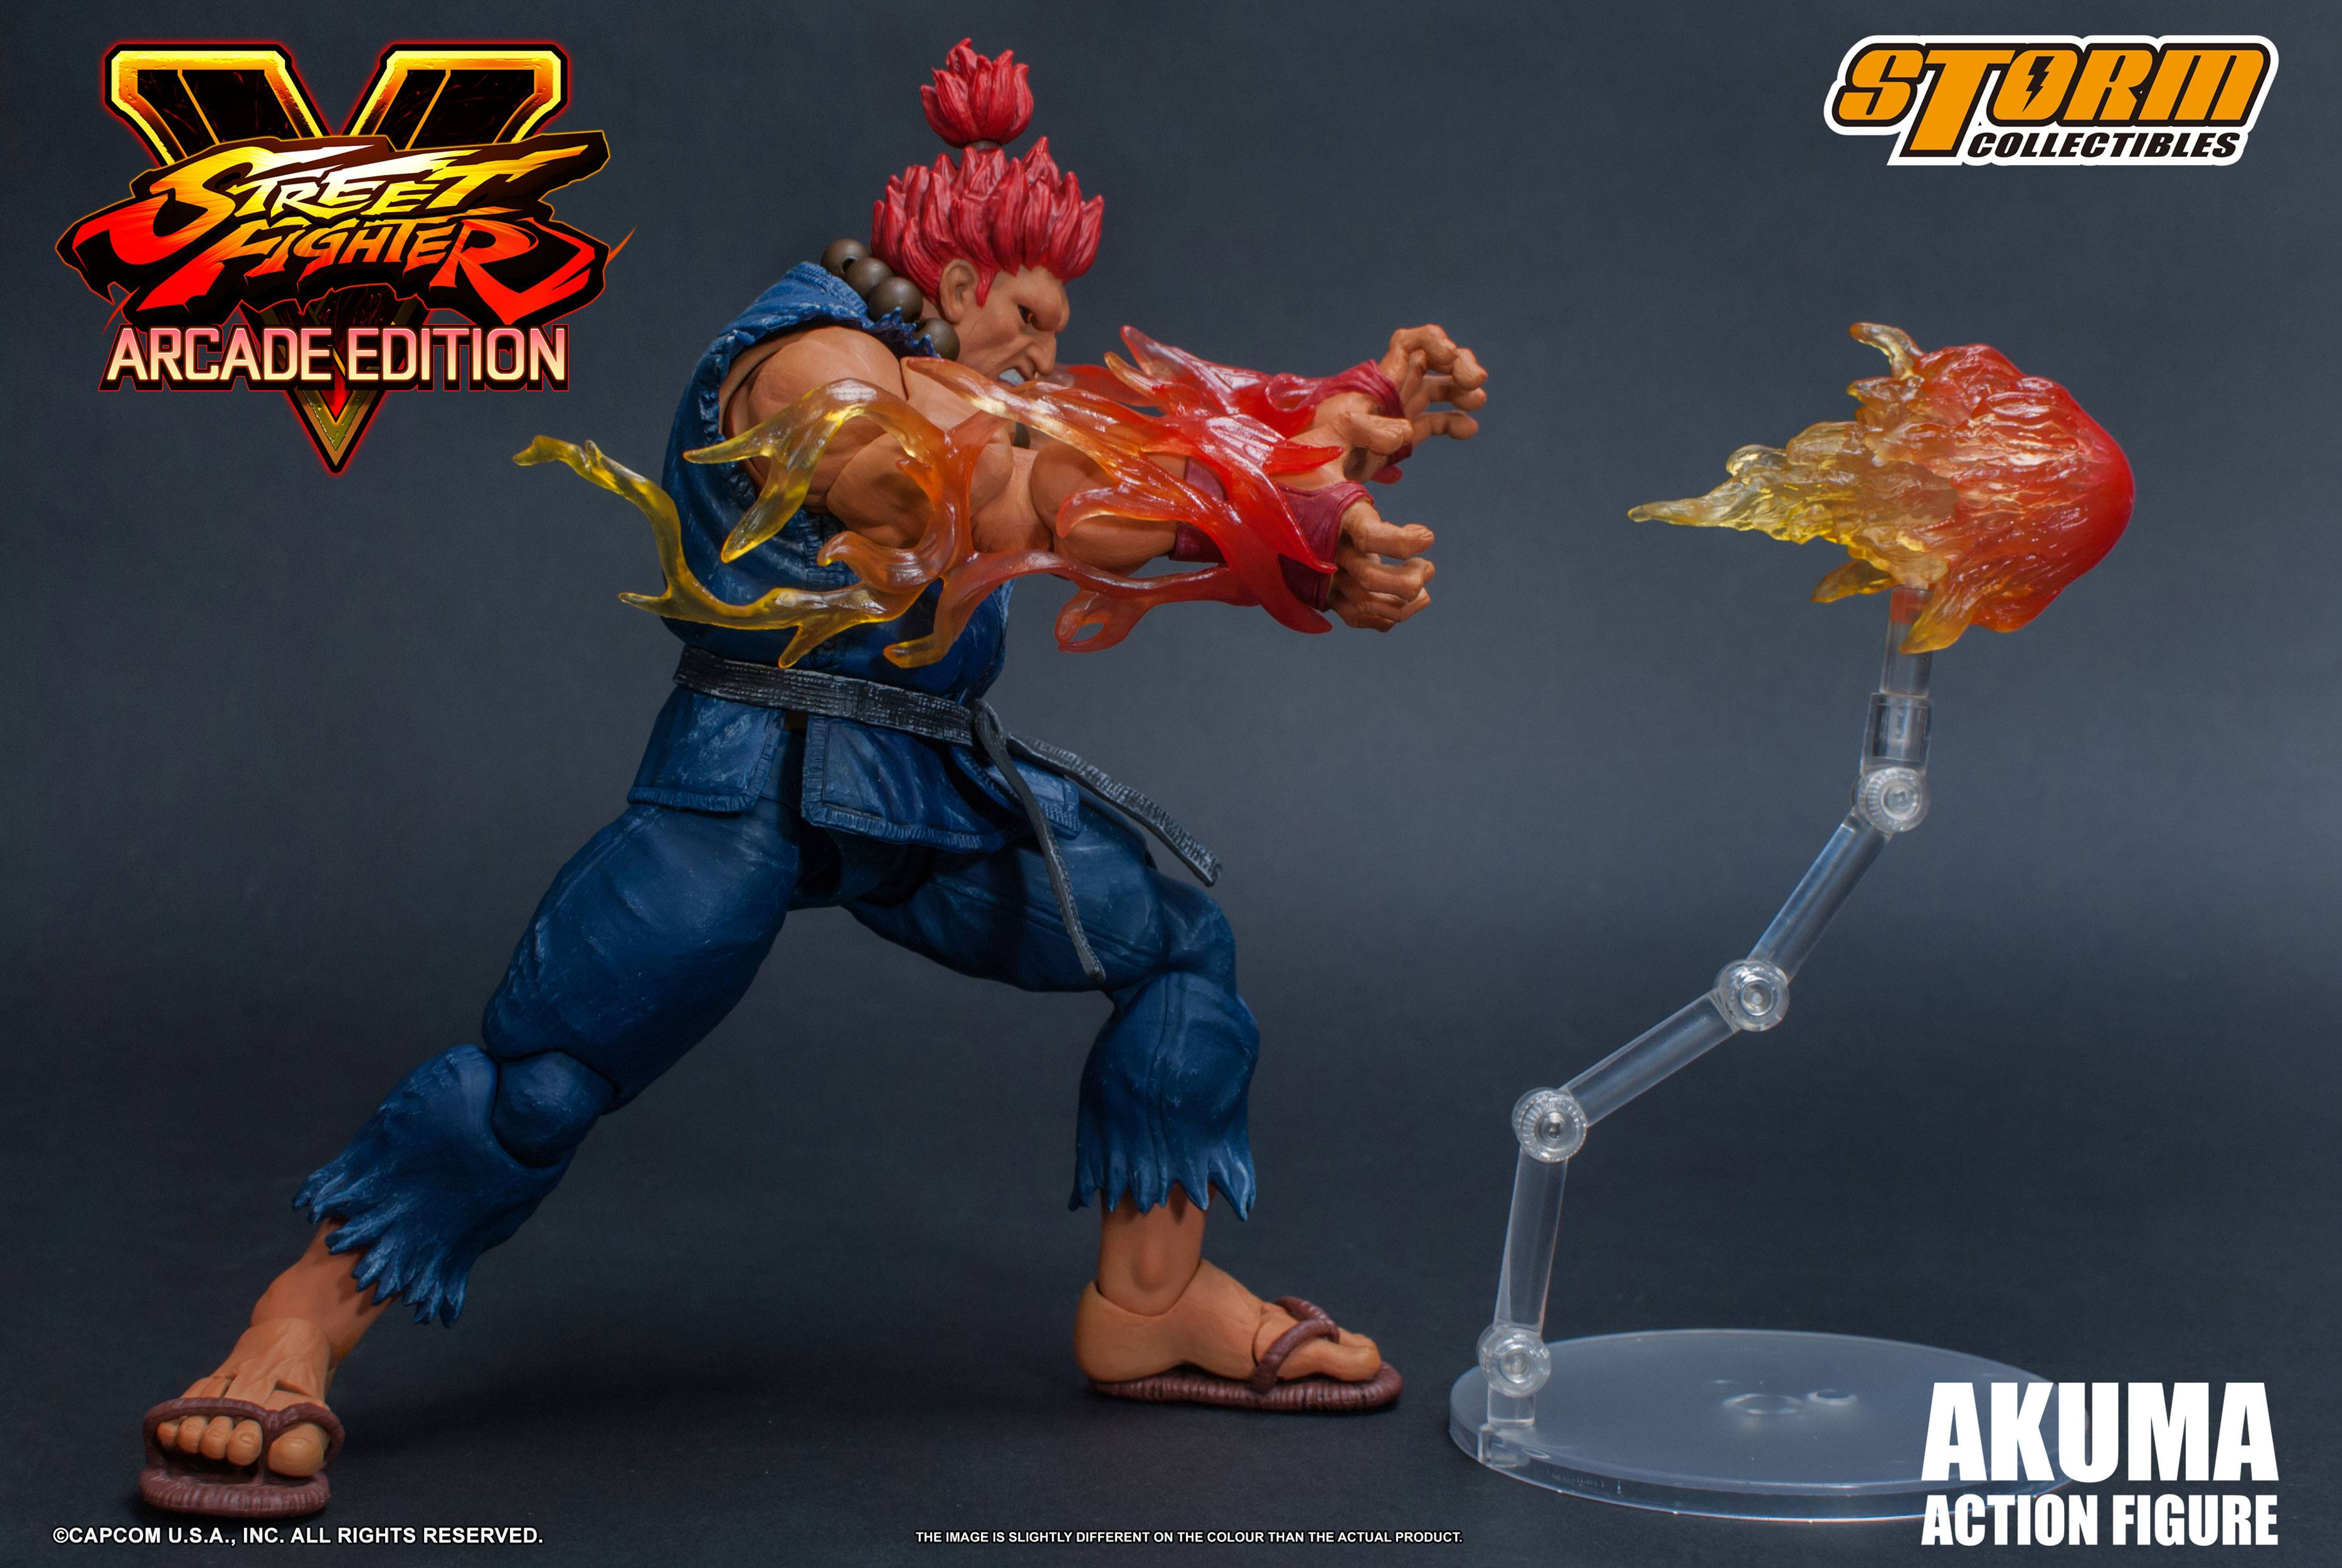 Street Fighter V Arcade Edition Action Figure 1 12 Akuma Nostalgia Tsume Art Chunli Buy More Than One Product Promotion Get A 25 5 Or 10 Discount Click Here To Know